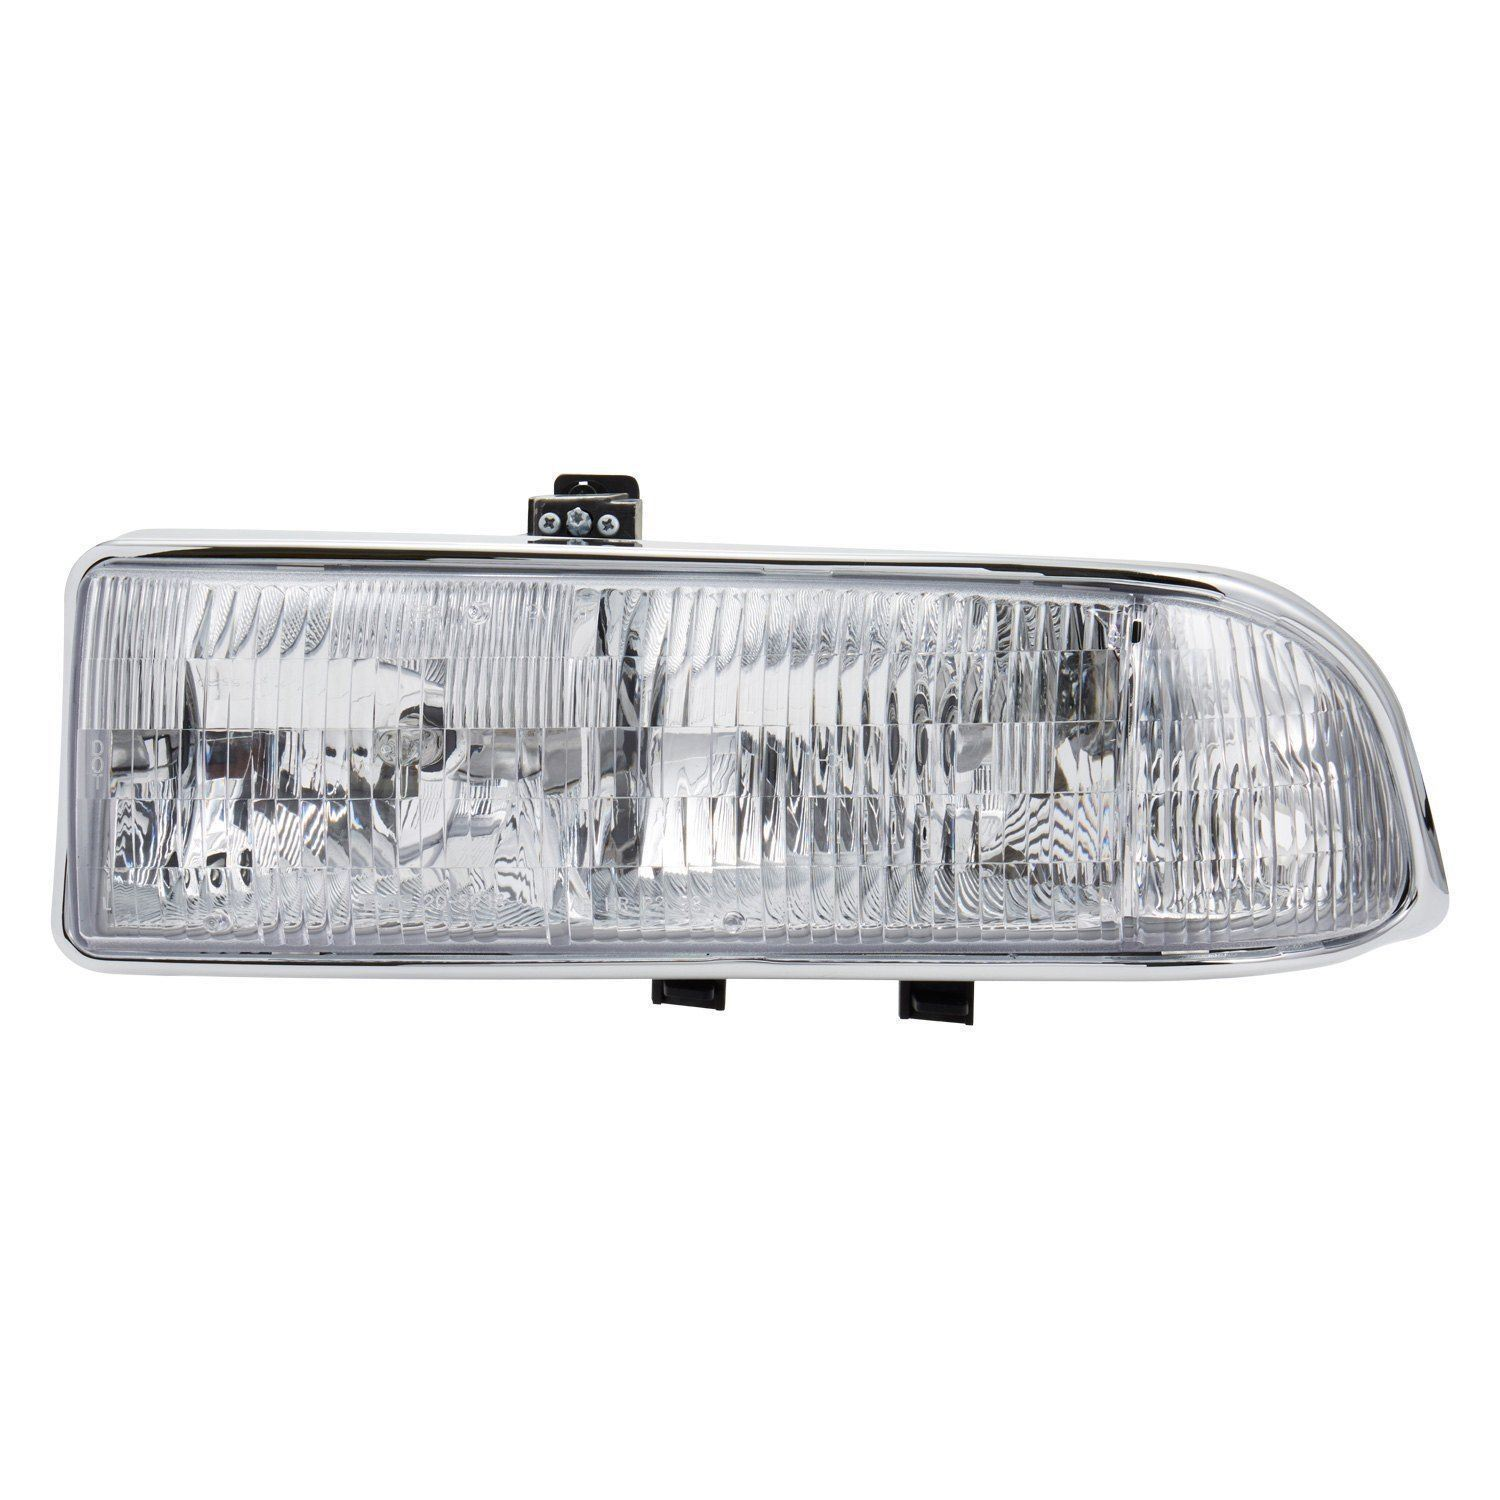 hight resolution of details about left side headlight assembly for 1998 2004 chevrolet s10 1998 2005 blazer